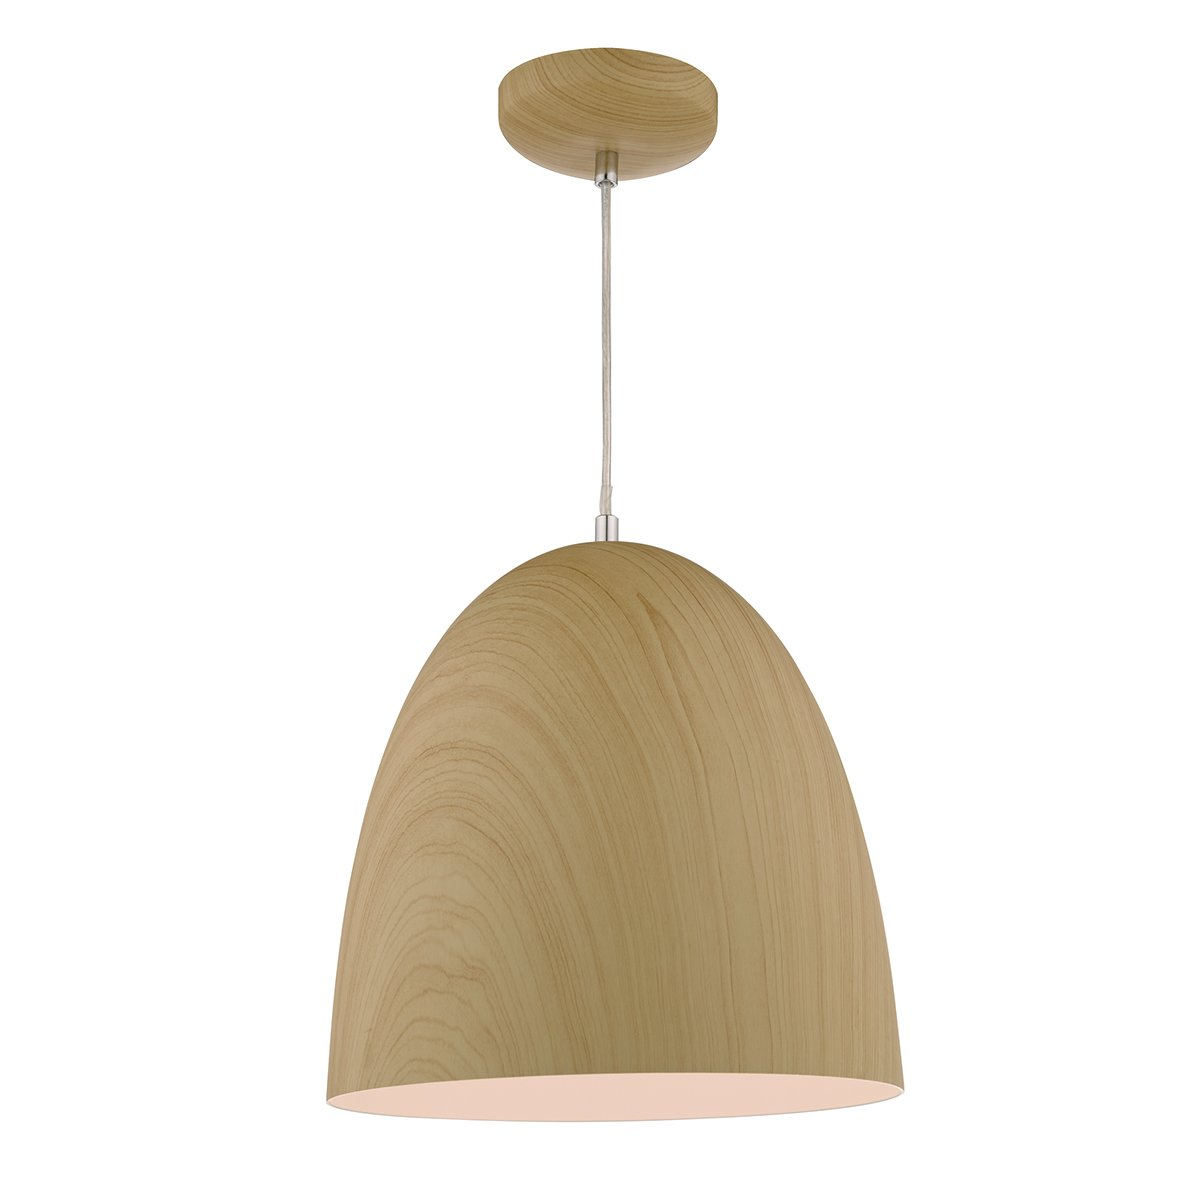 Dar GLY0143 Glyn 1 Light Pendantin in Wood effect